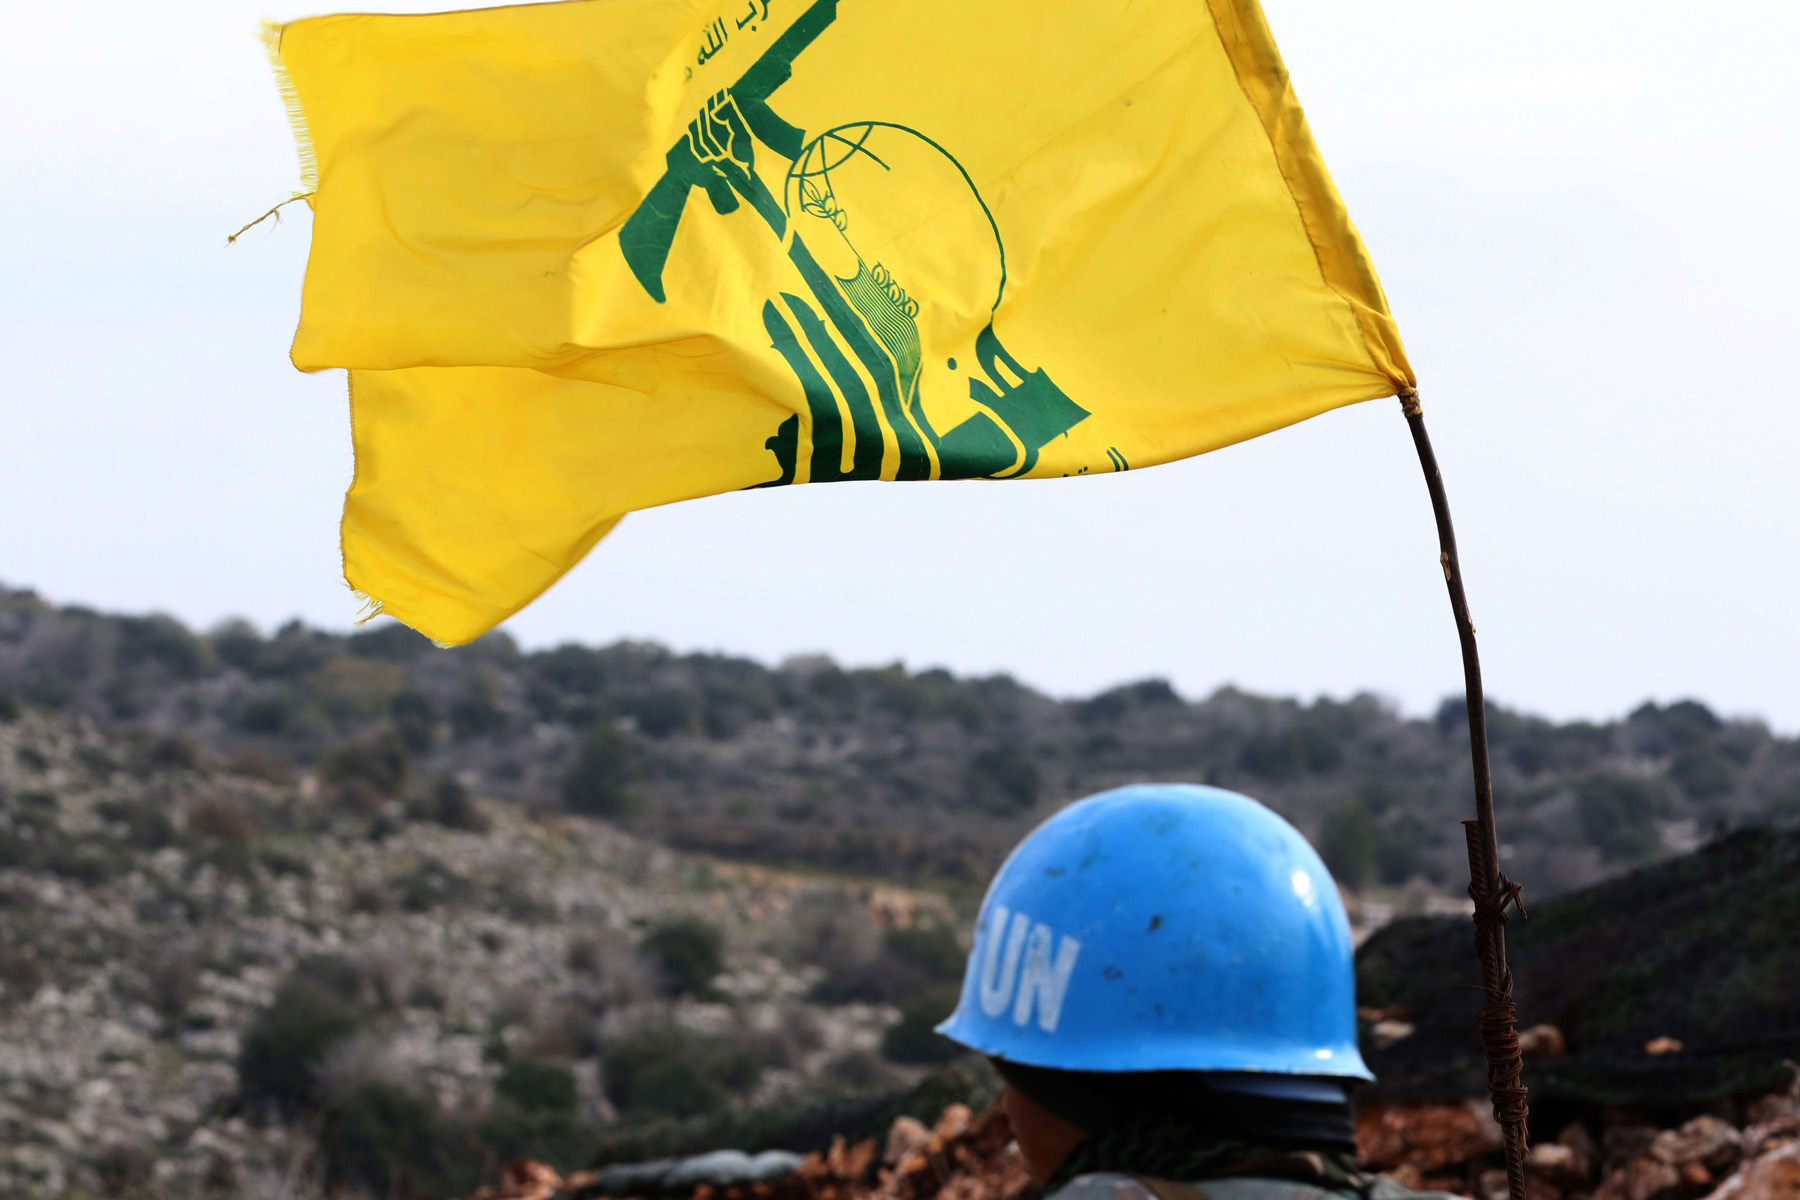 A UN Interim Forces in Lebanon  soldier monitoring the border between Lebanon and Israel. On his right is a flag of the Hezbollah movement. (AFP)